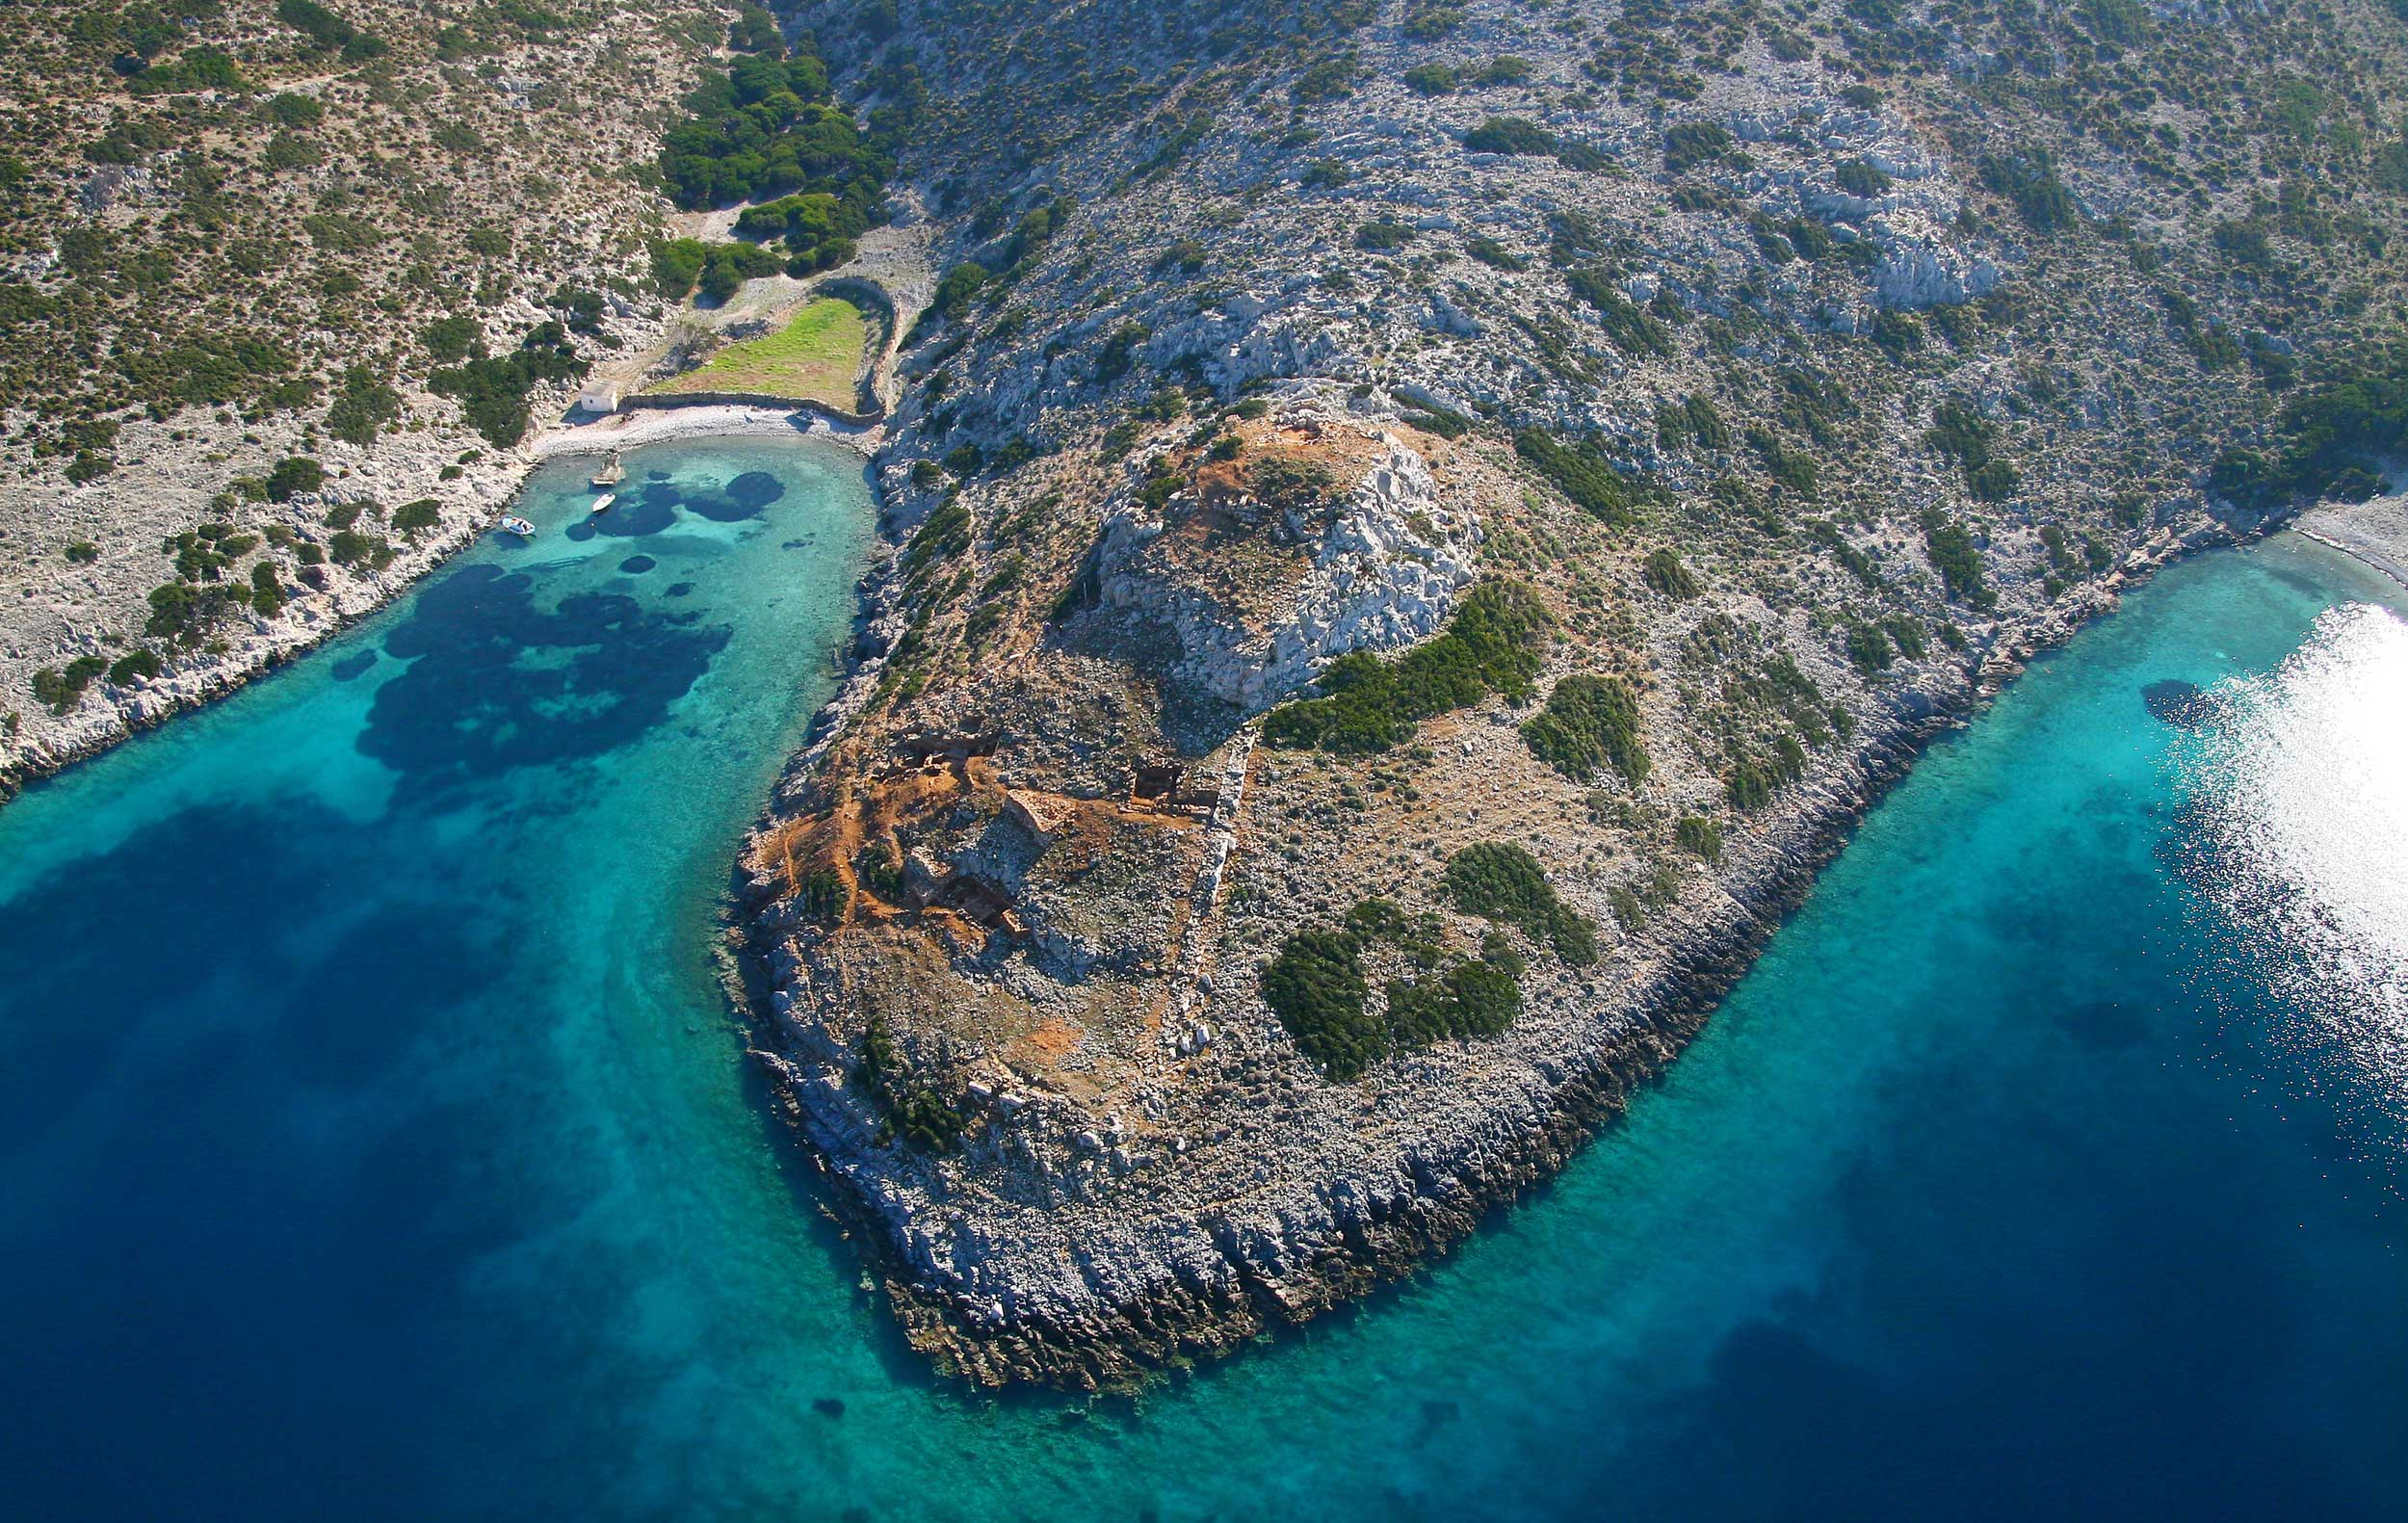 Aerial view of a rocky promontory in an aquamarine sea, Greece